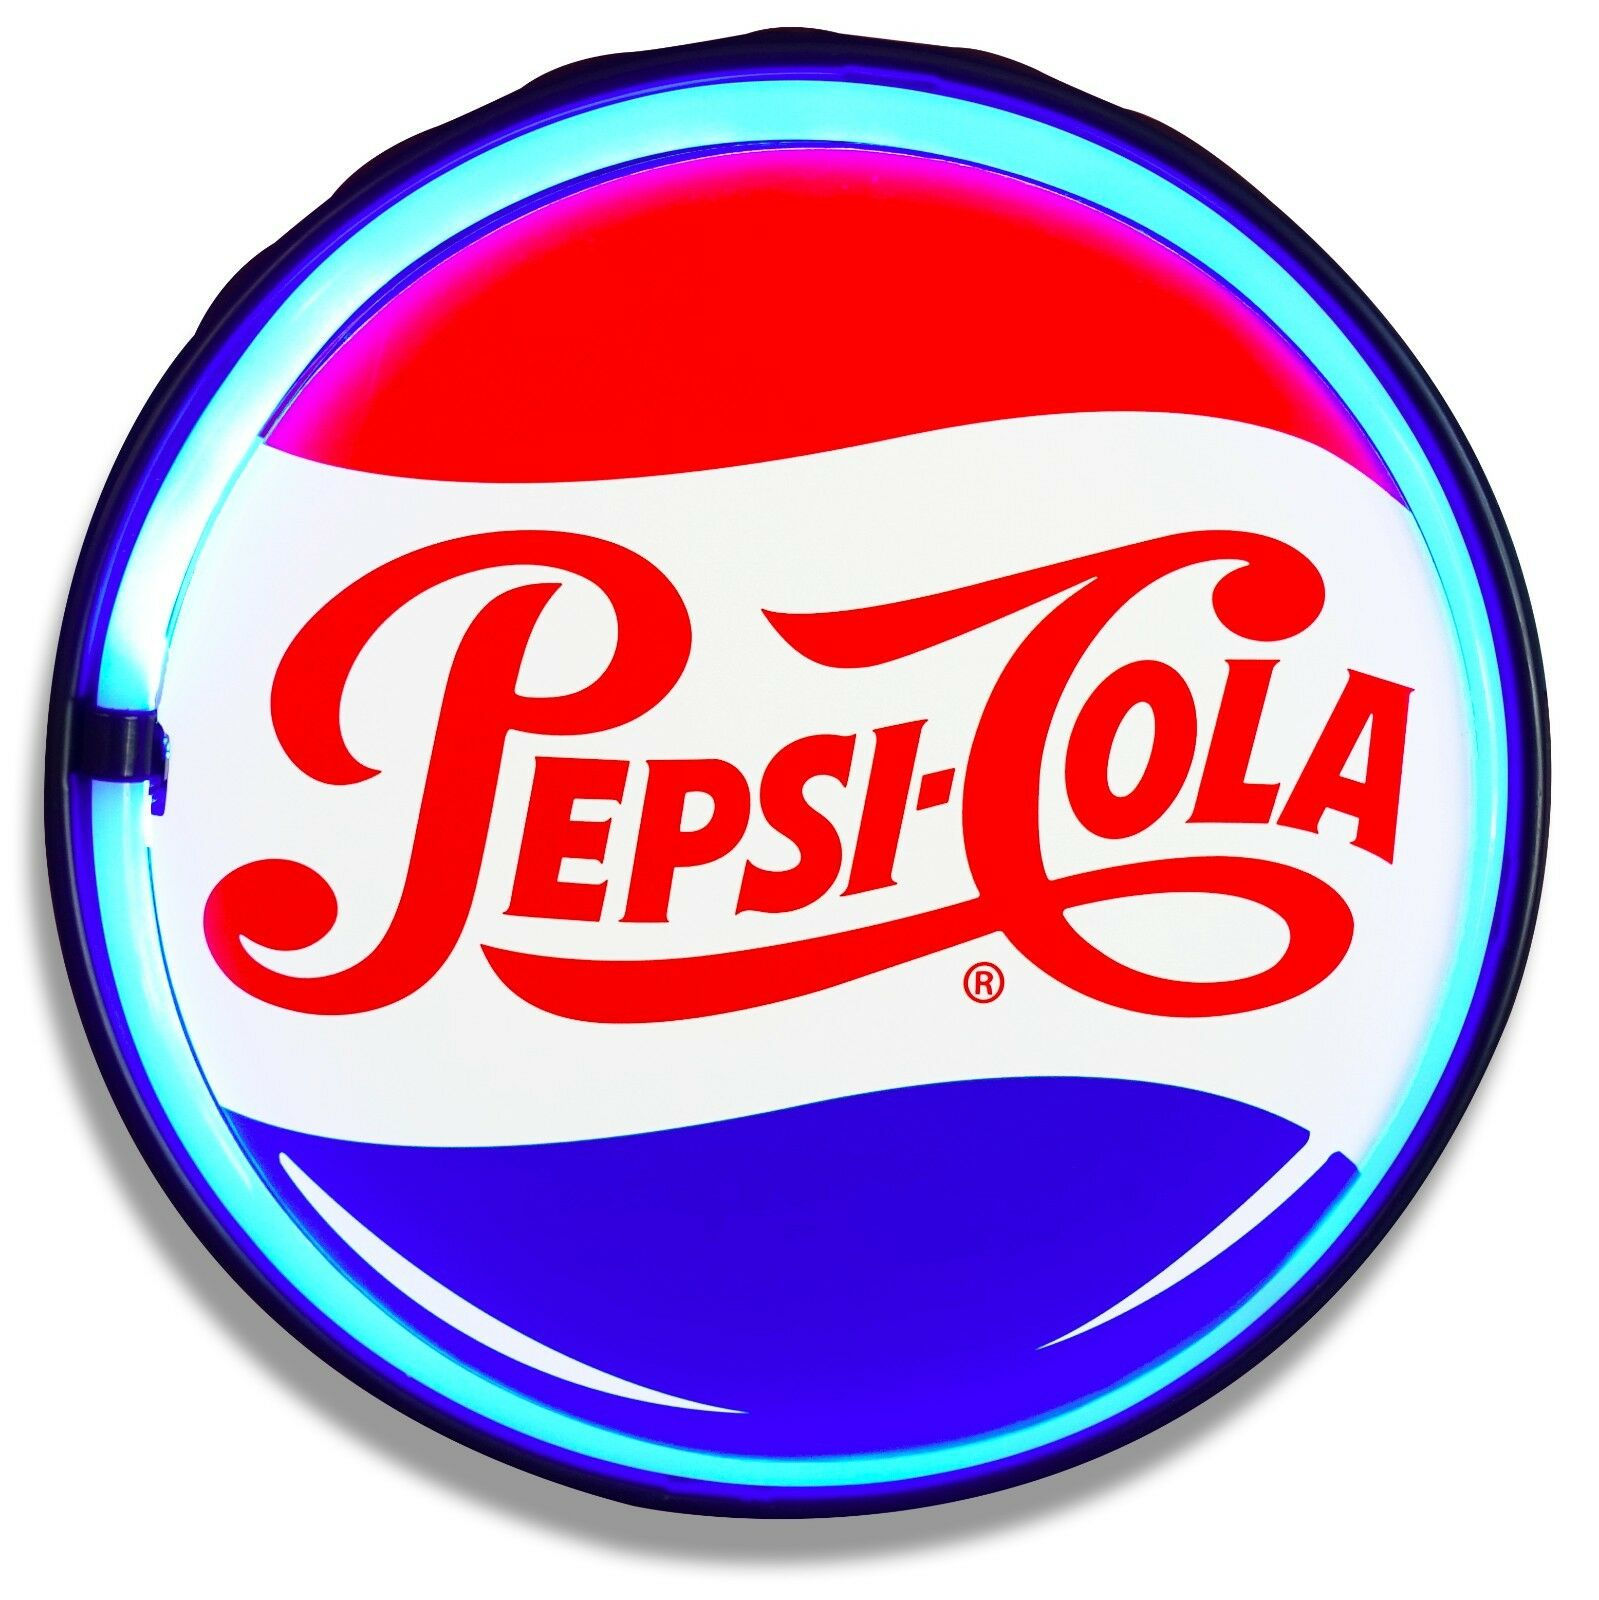 Pepsi-Cola  Bottlecap - Reproduction Vintage Advertising Sig